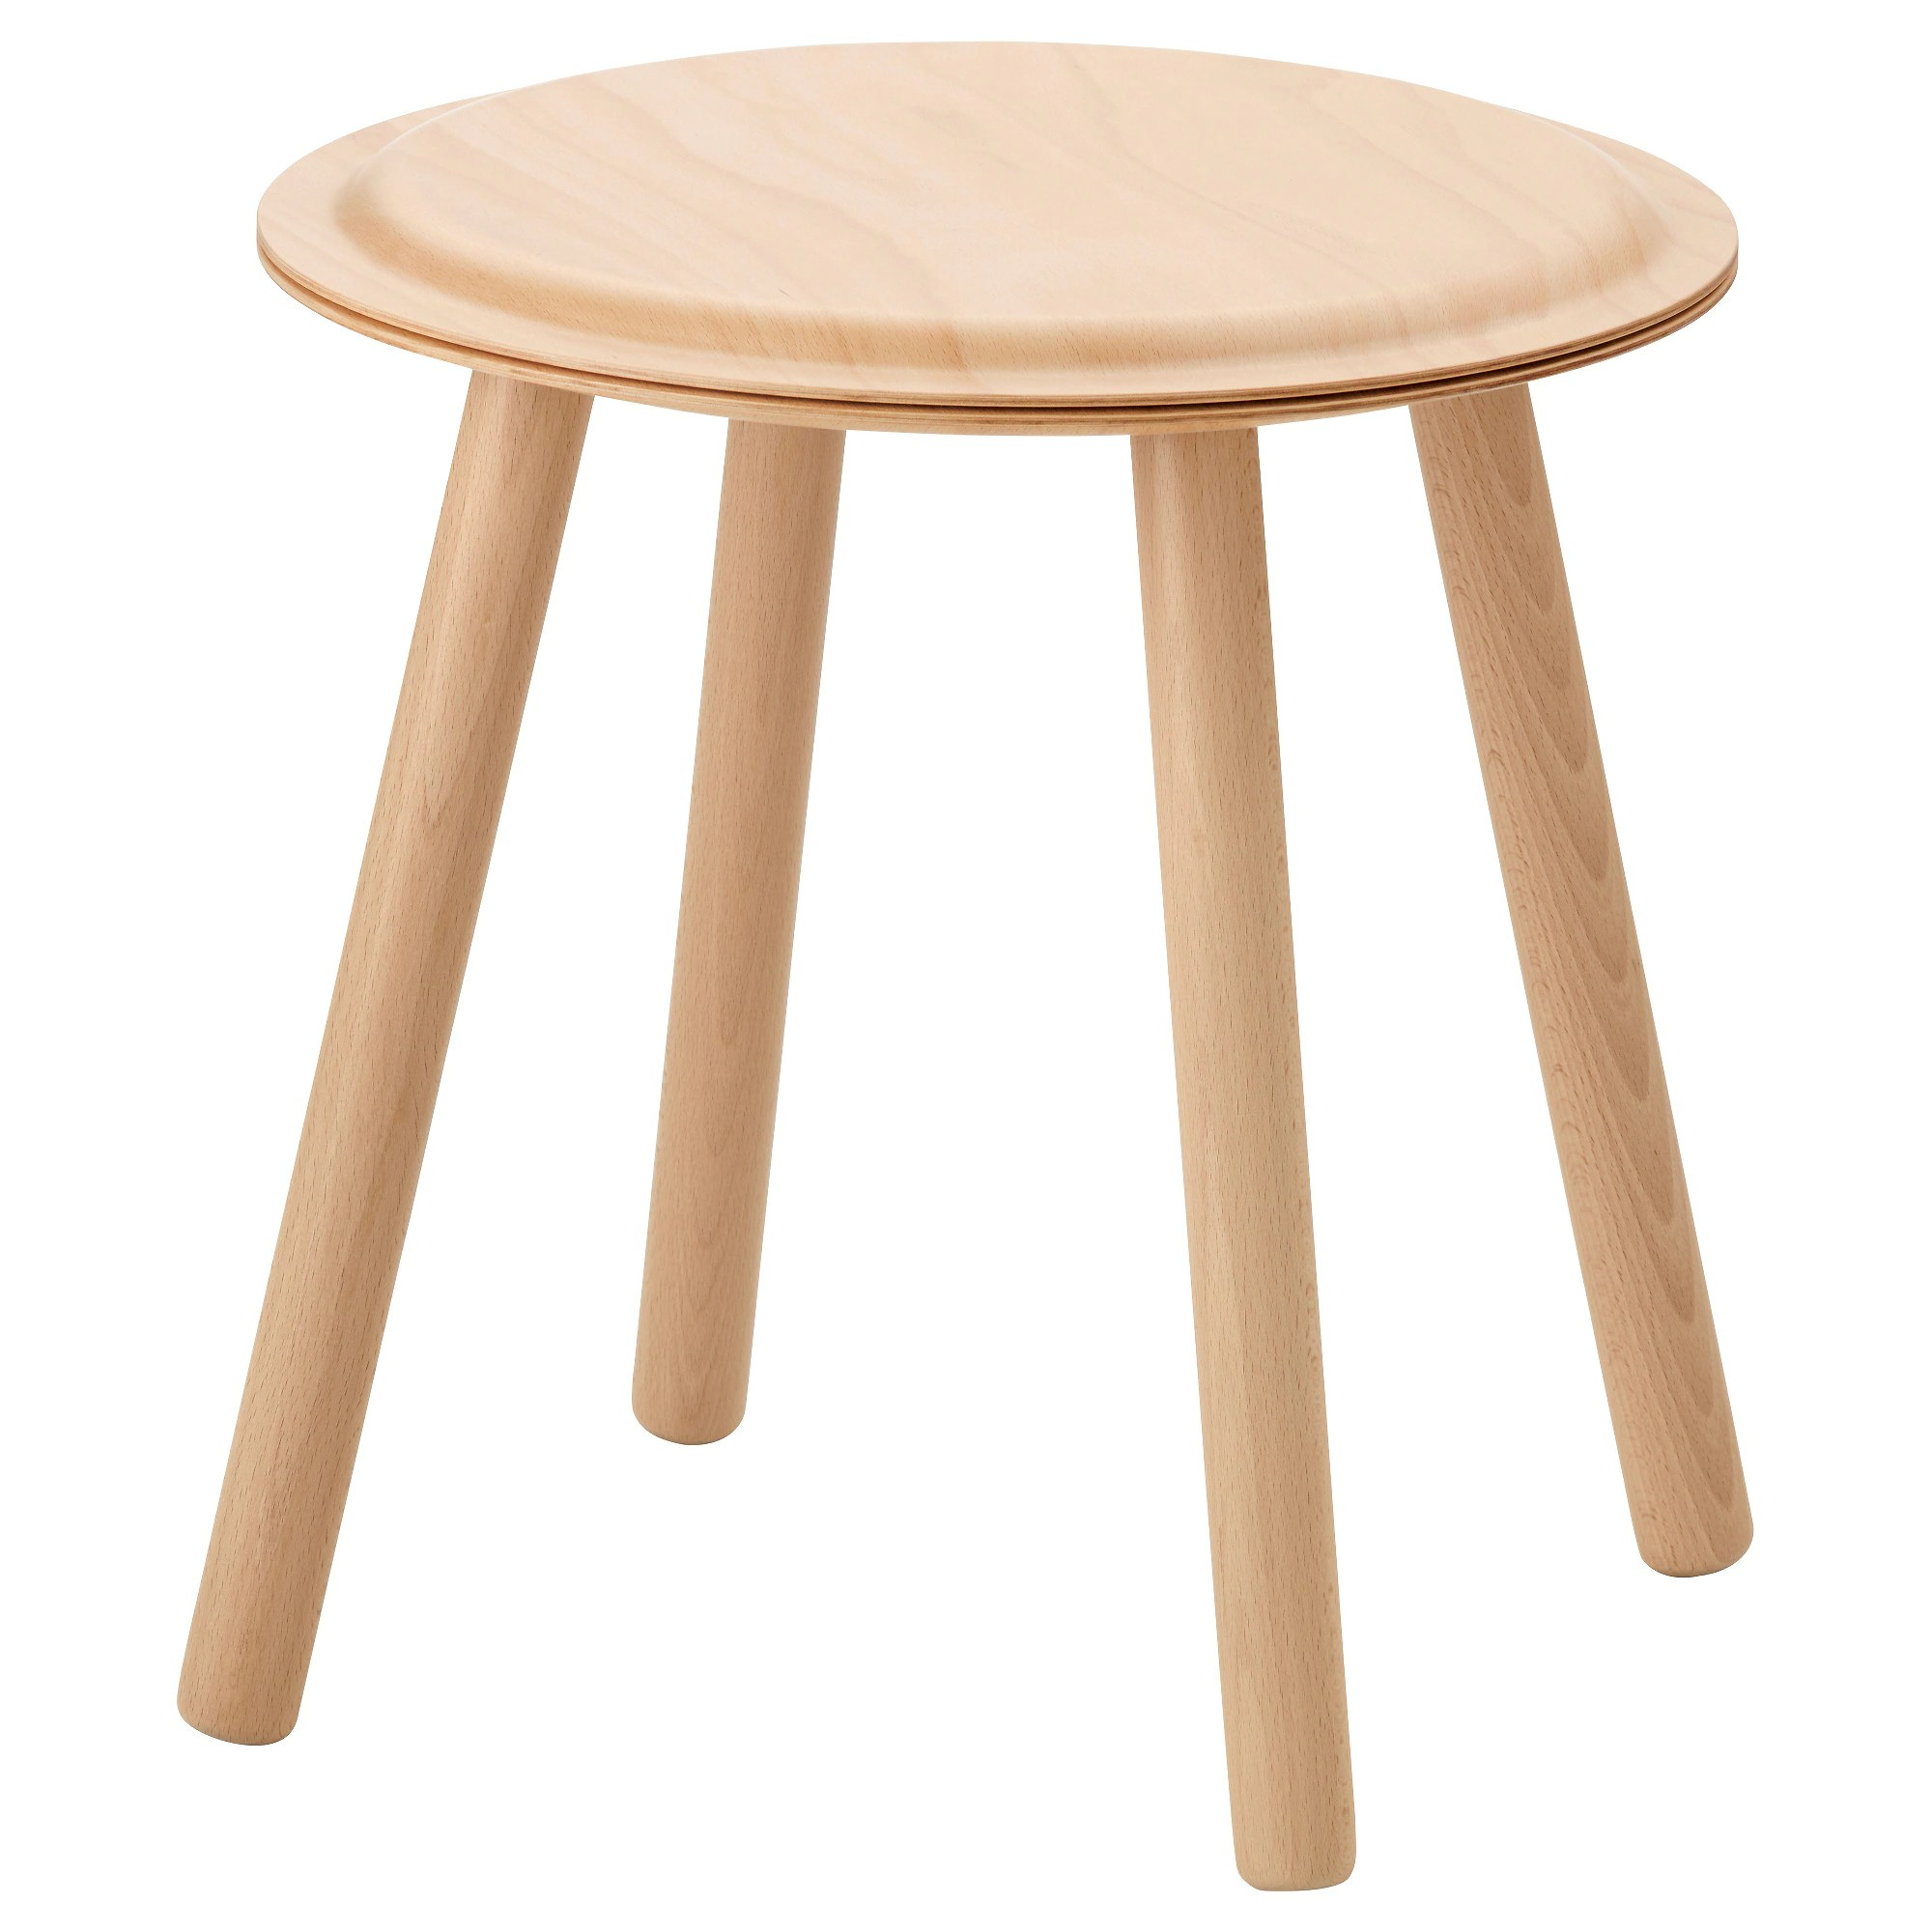 Structube Stools Living Room Table With Stools Myshindigs